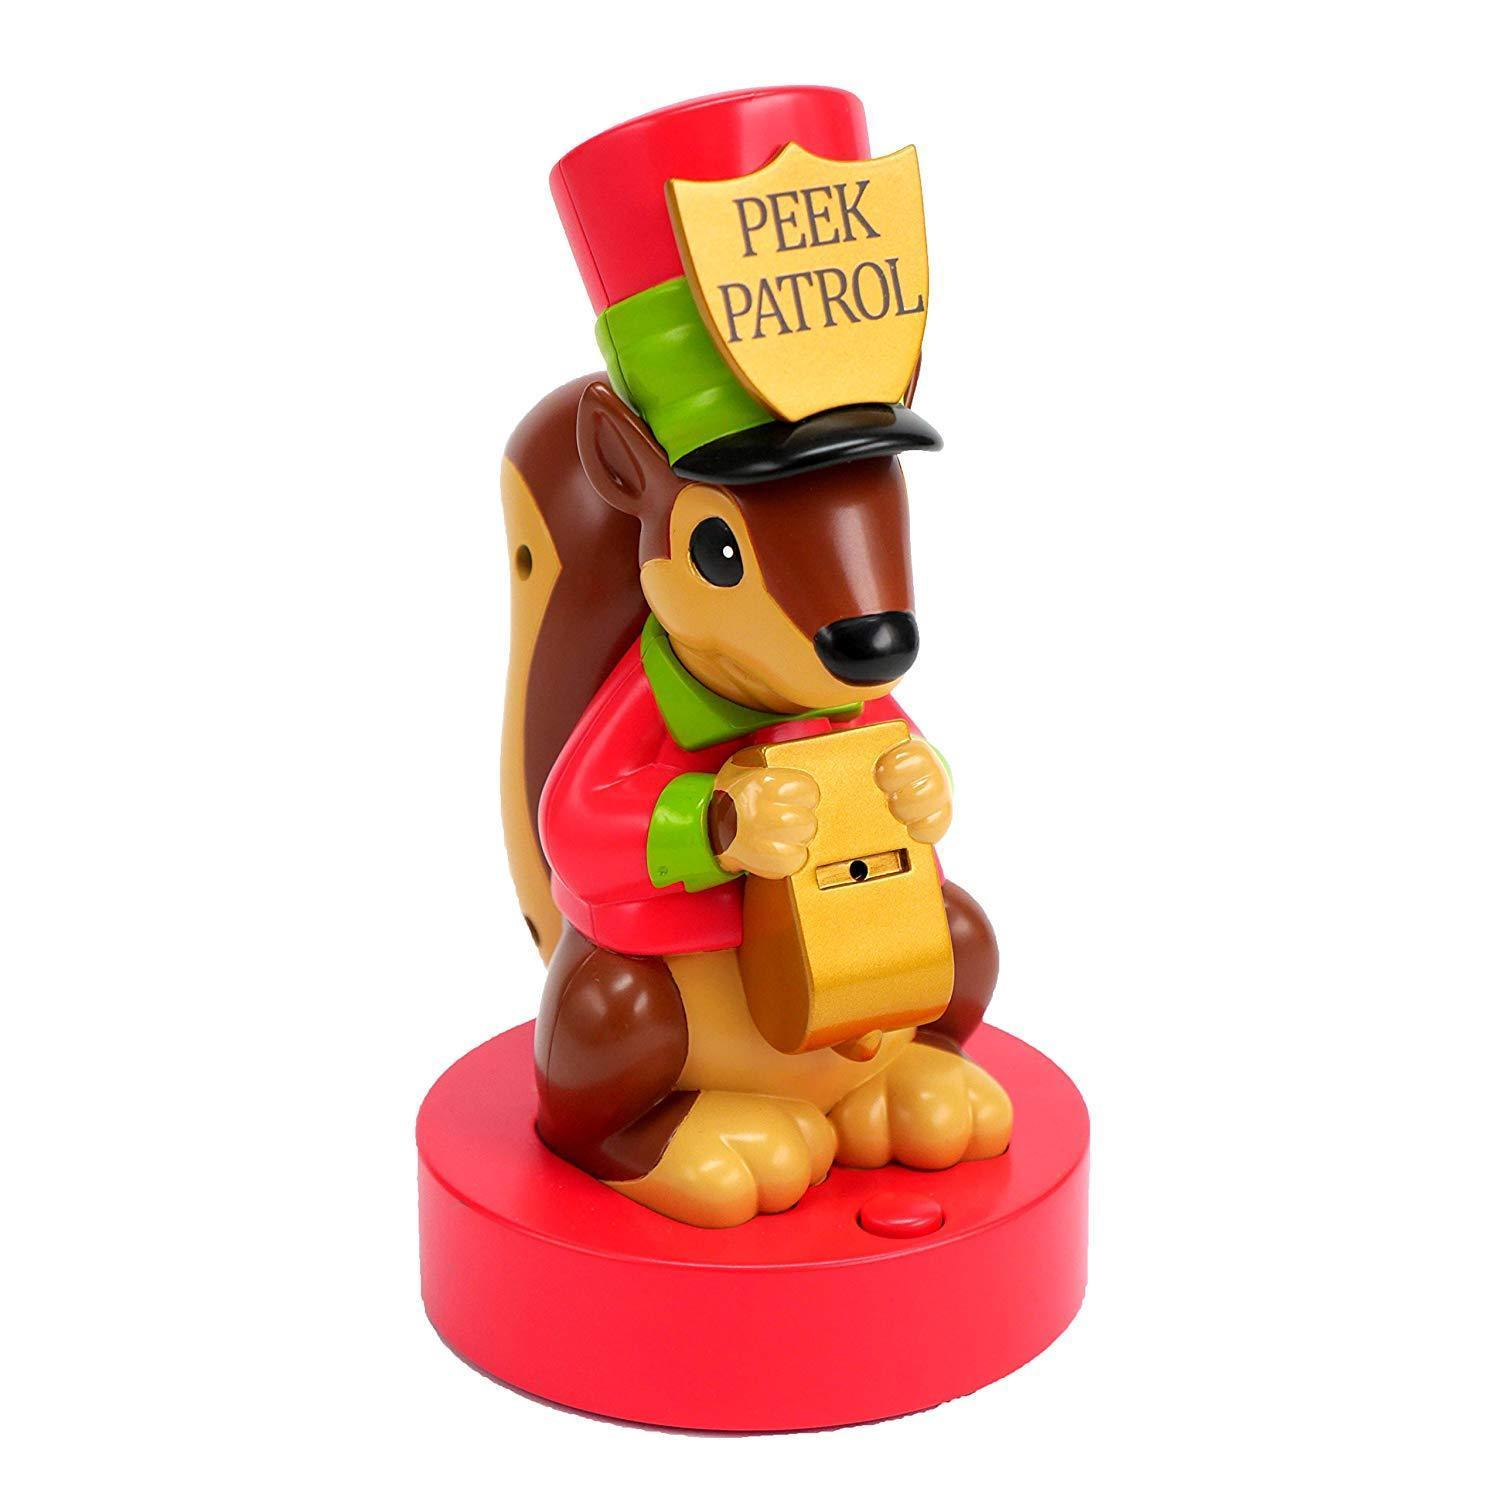 Hallmark Christmas Motion-Activated Squirrel Peek Buster, Guards Presents Under